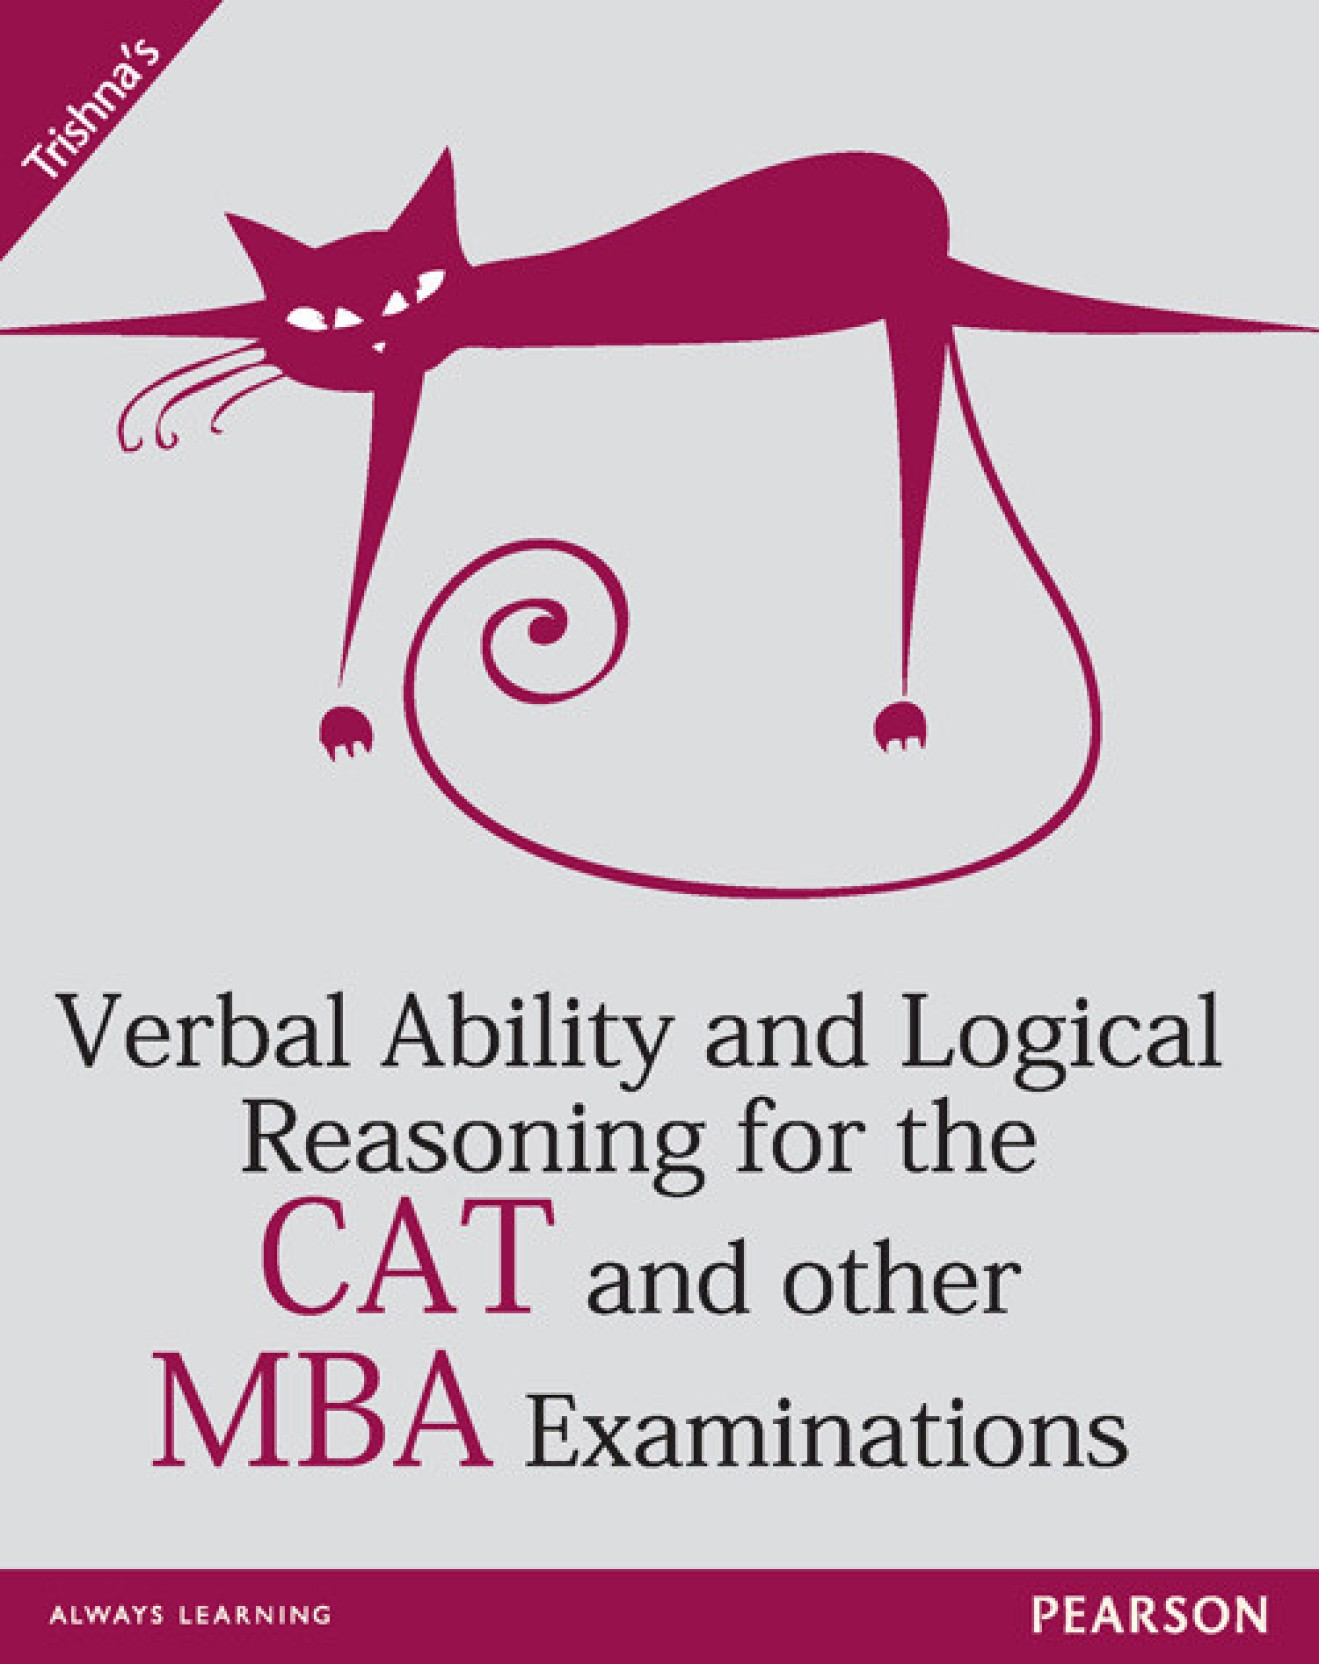 Image result for Trishna's Verbal Ability And Logical Reasoning For The CAT And Other MBA Examinations by T.I.M.E.